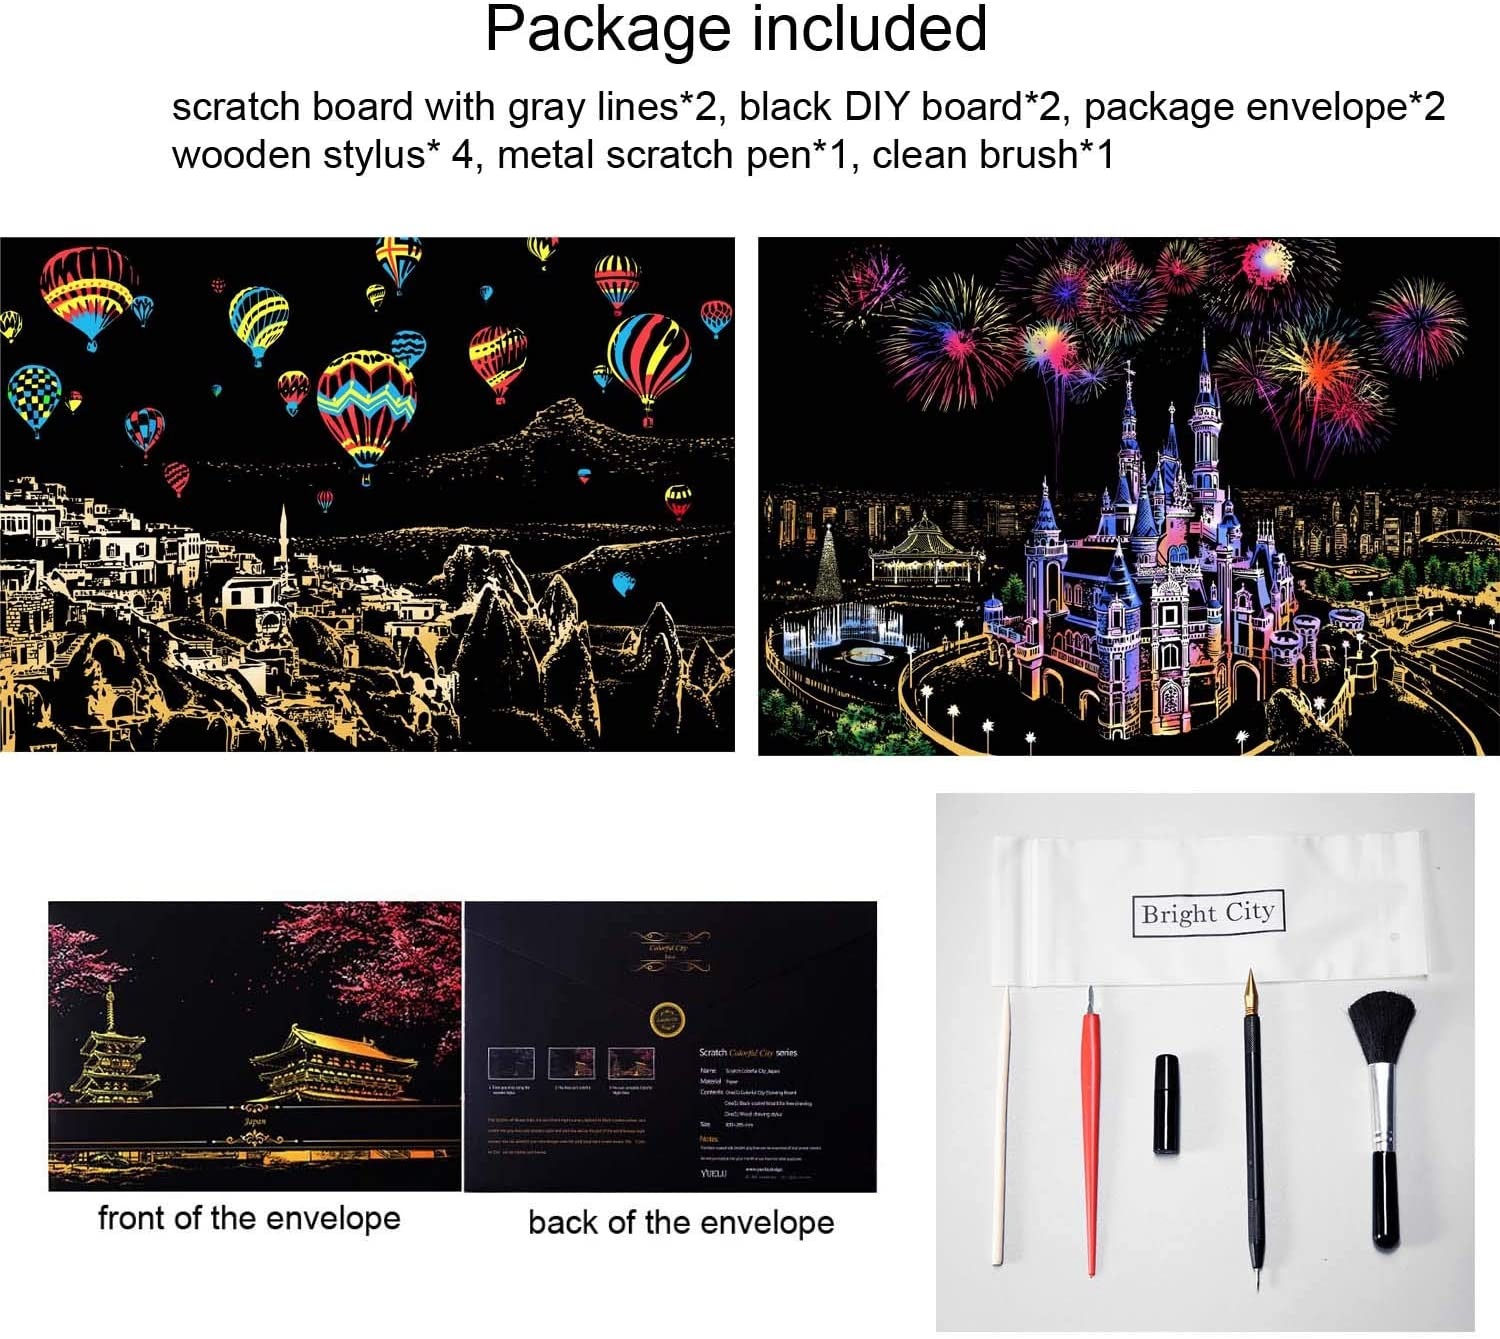 2 Packs Scratch Art Paper for Adults /& Kids 16 X 11.2 Inches with Tools Rainbow Painting Sketch Pads DIY Art Craft Night View Scratchboard